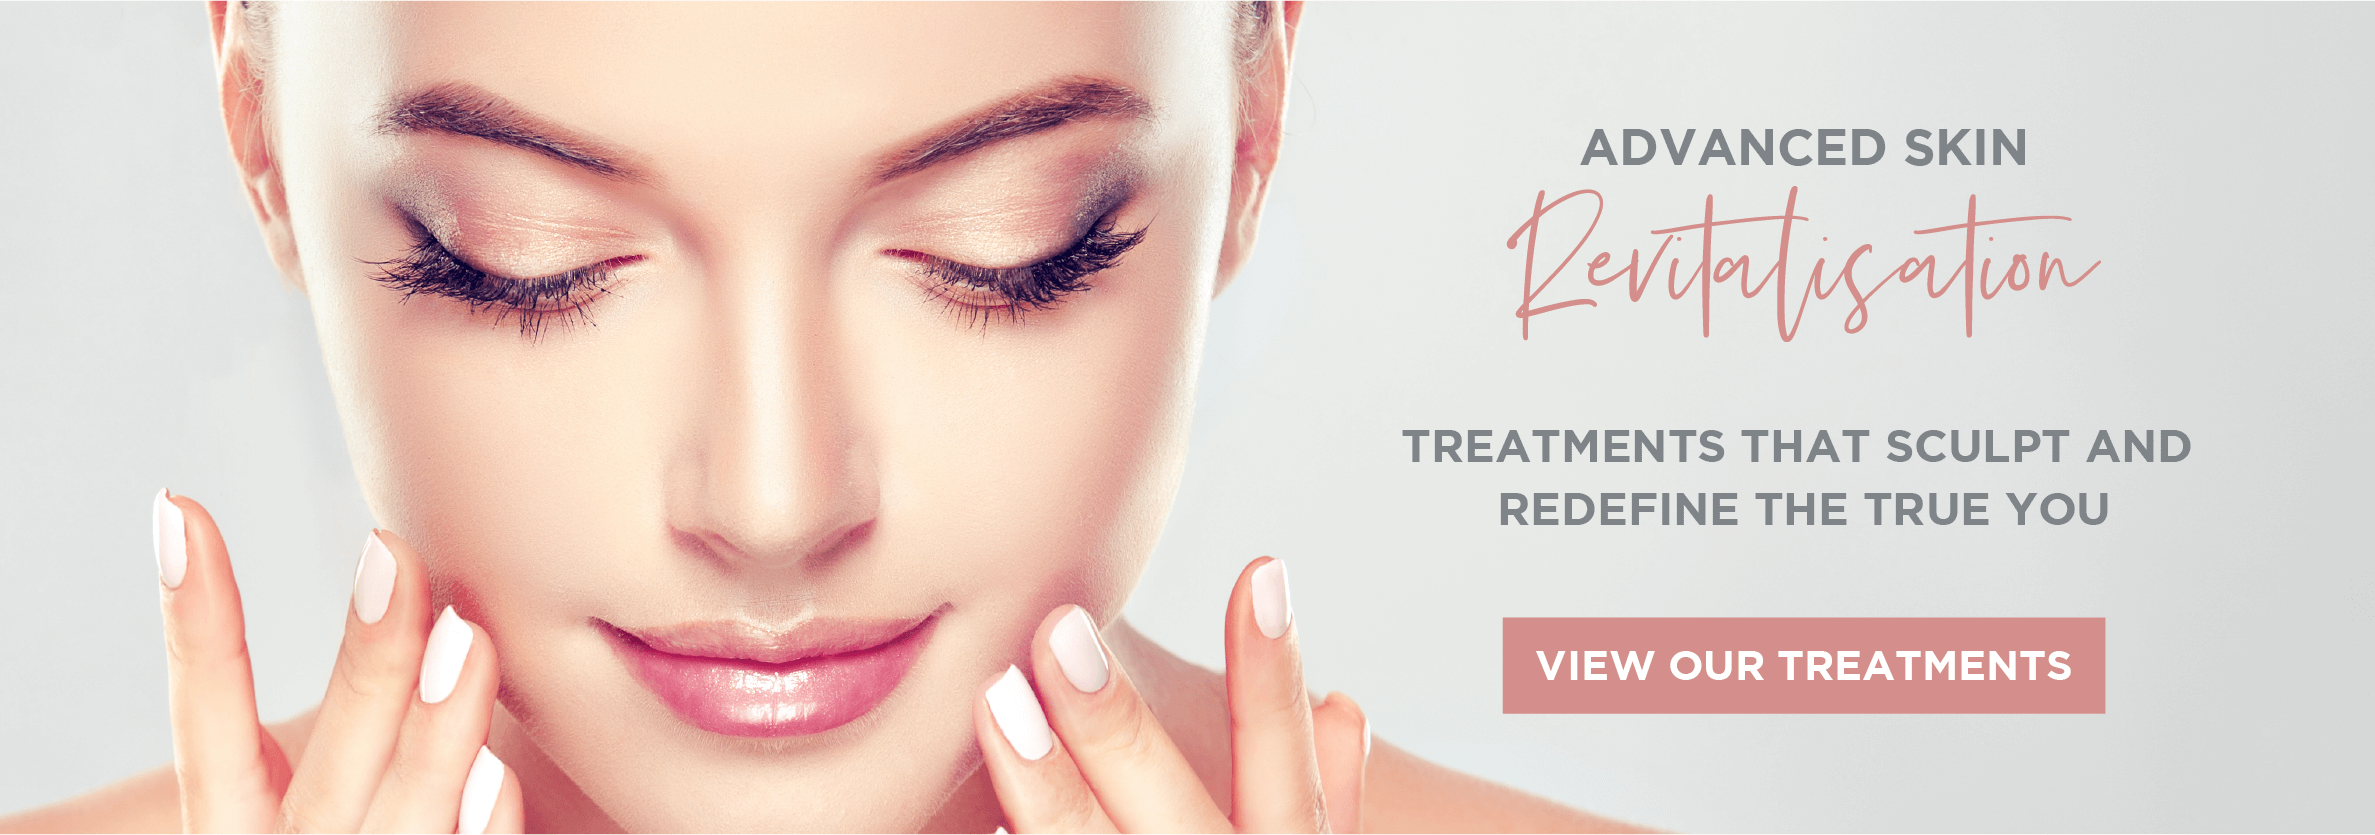 Advanced Skin Revitalisation